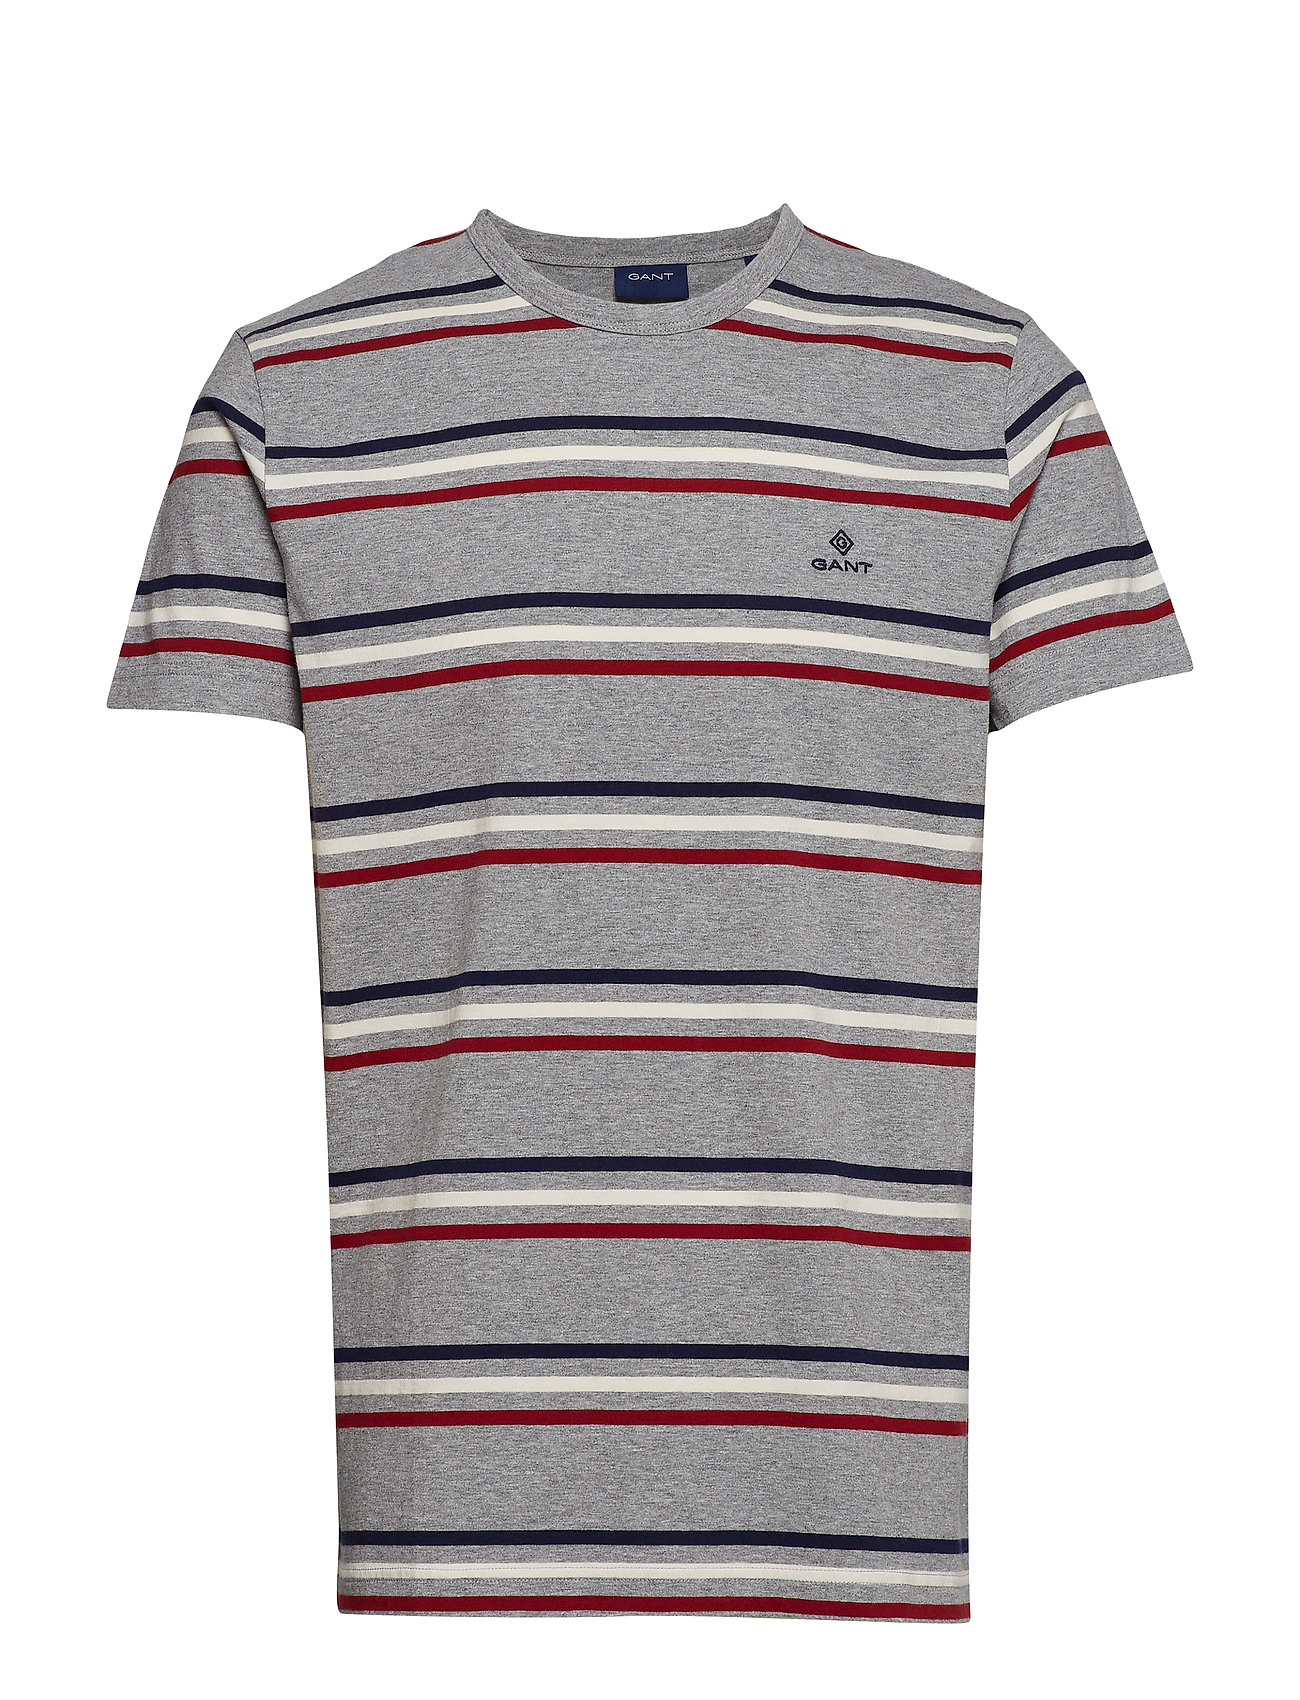 Gant D1. HEAVY JERSEY STRIPED T-SHIRT - GREY MELANGE